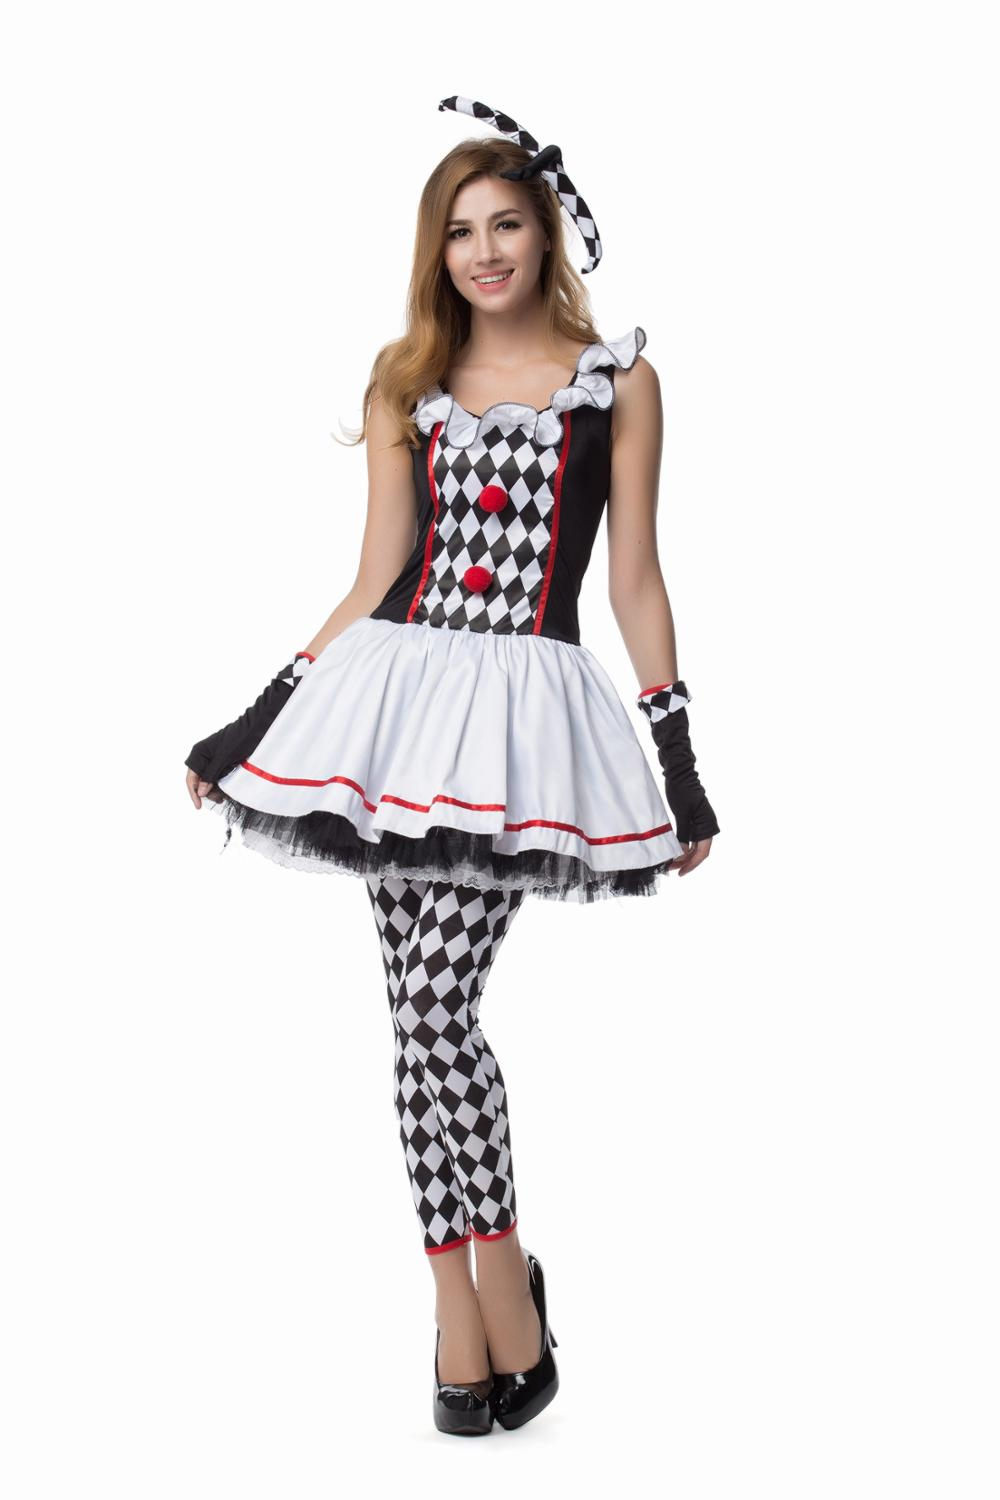 Circus Clown Harley Quinn Costume Tee Dress w//Small Bells for Halloween Cosplay